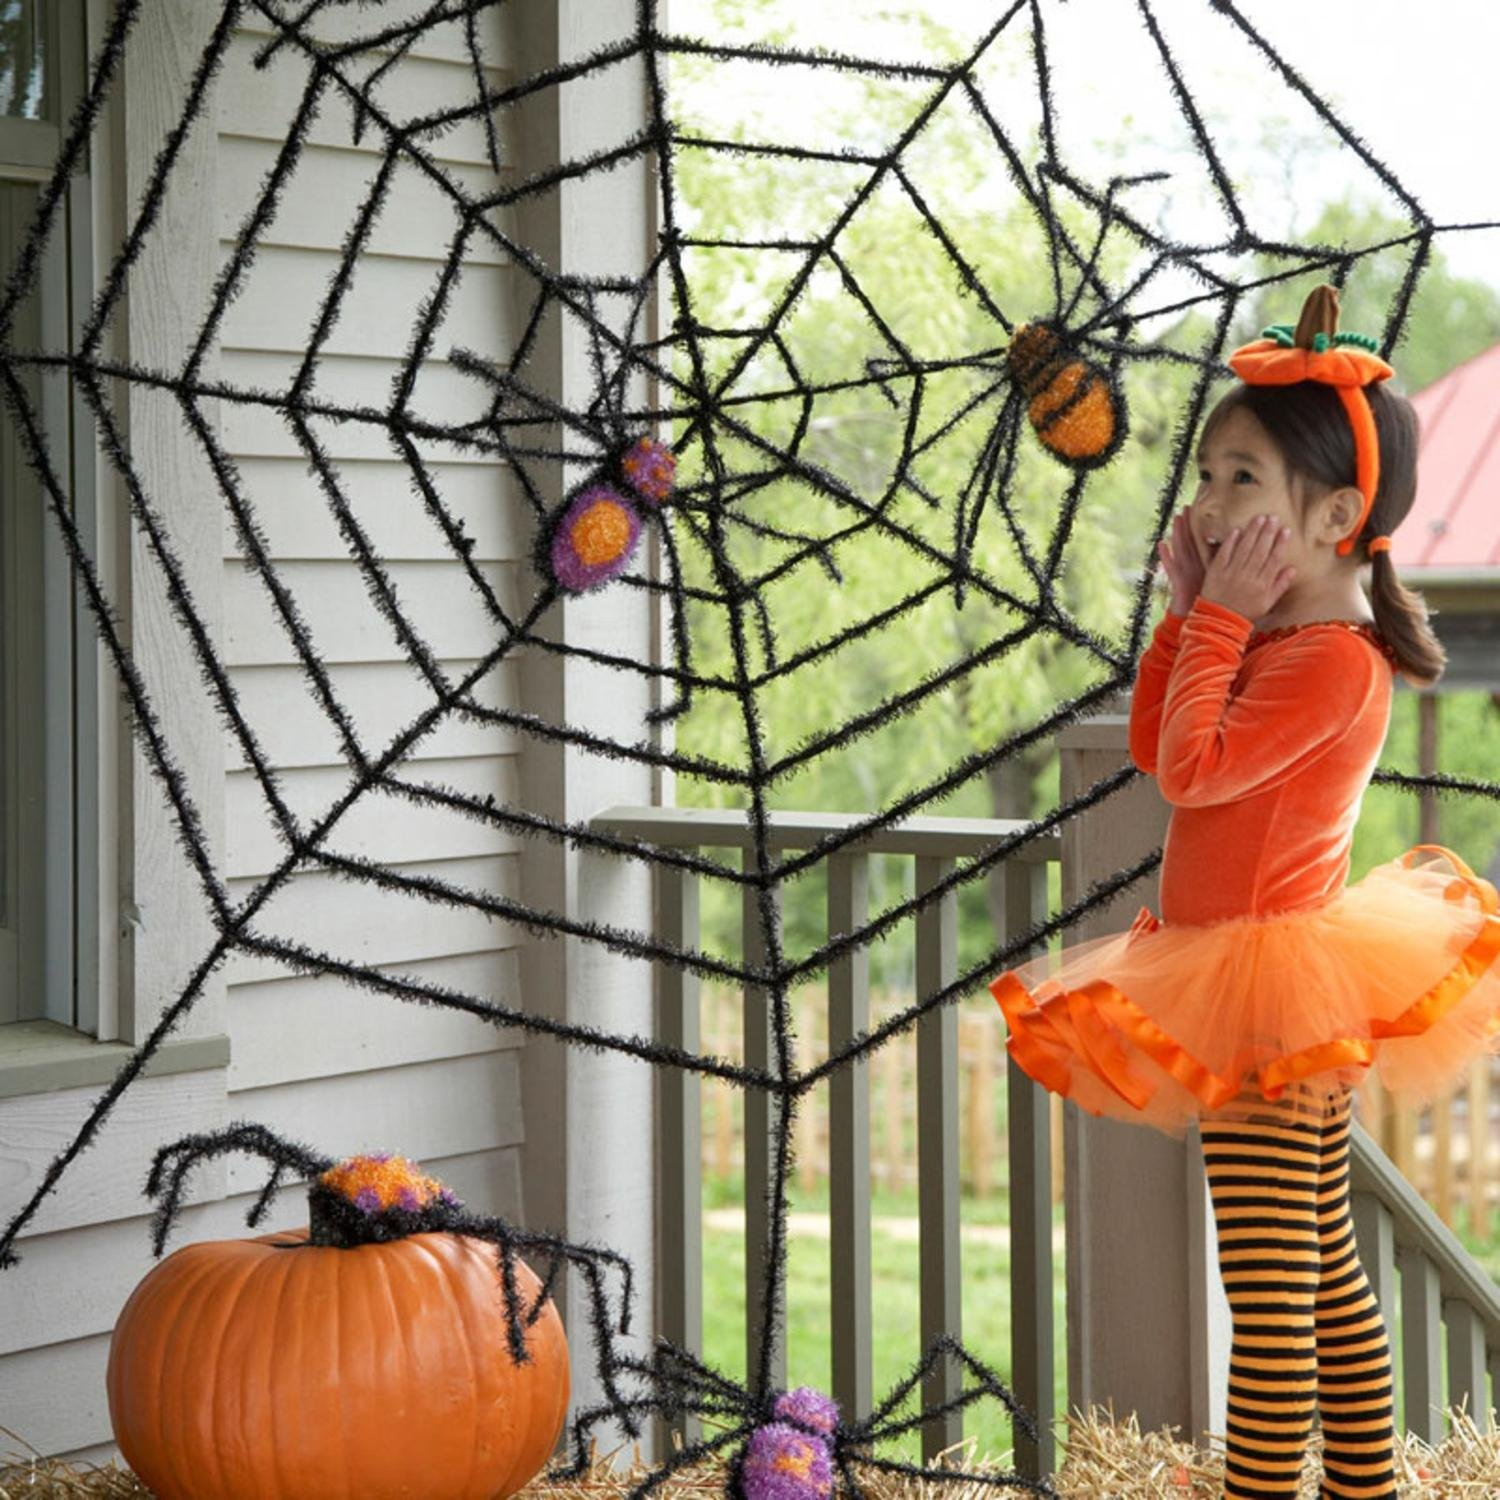 amazoncom giant spider web and giant spiders halloween decoration patio lawn garden - Halloween Spiders